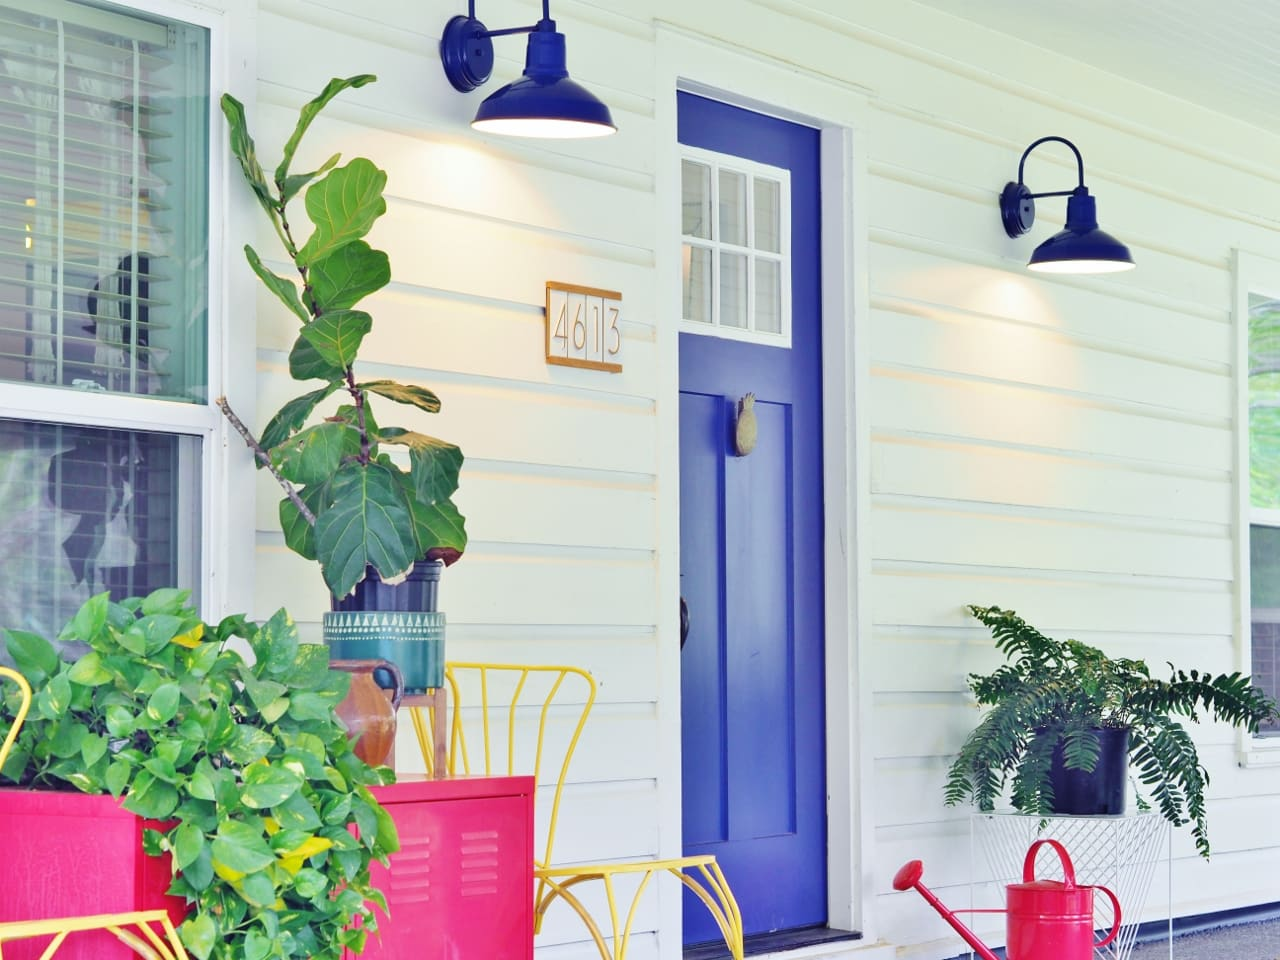 Paint the exterior an appealing color like this blue front door